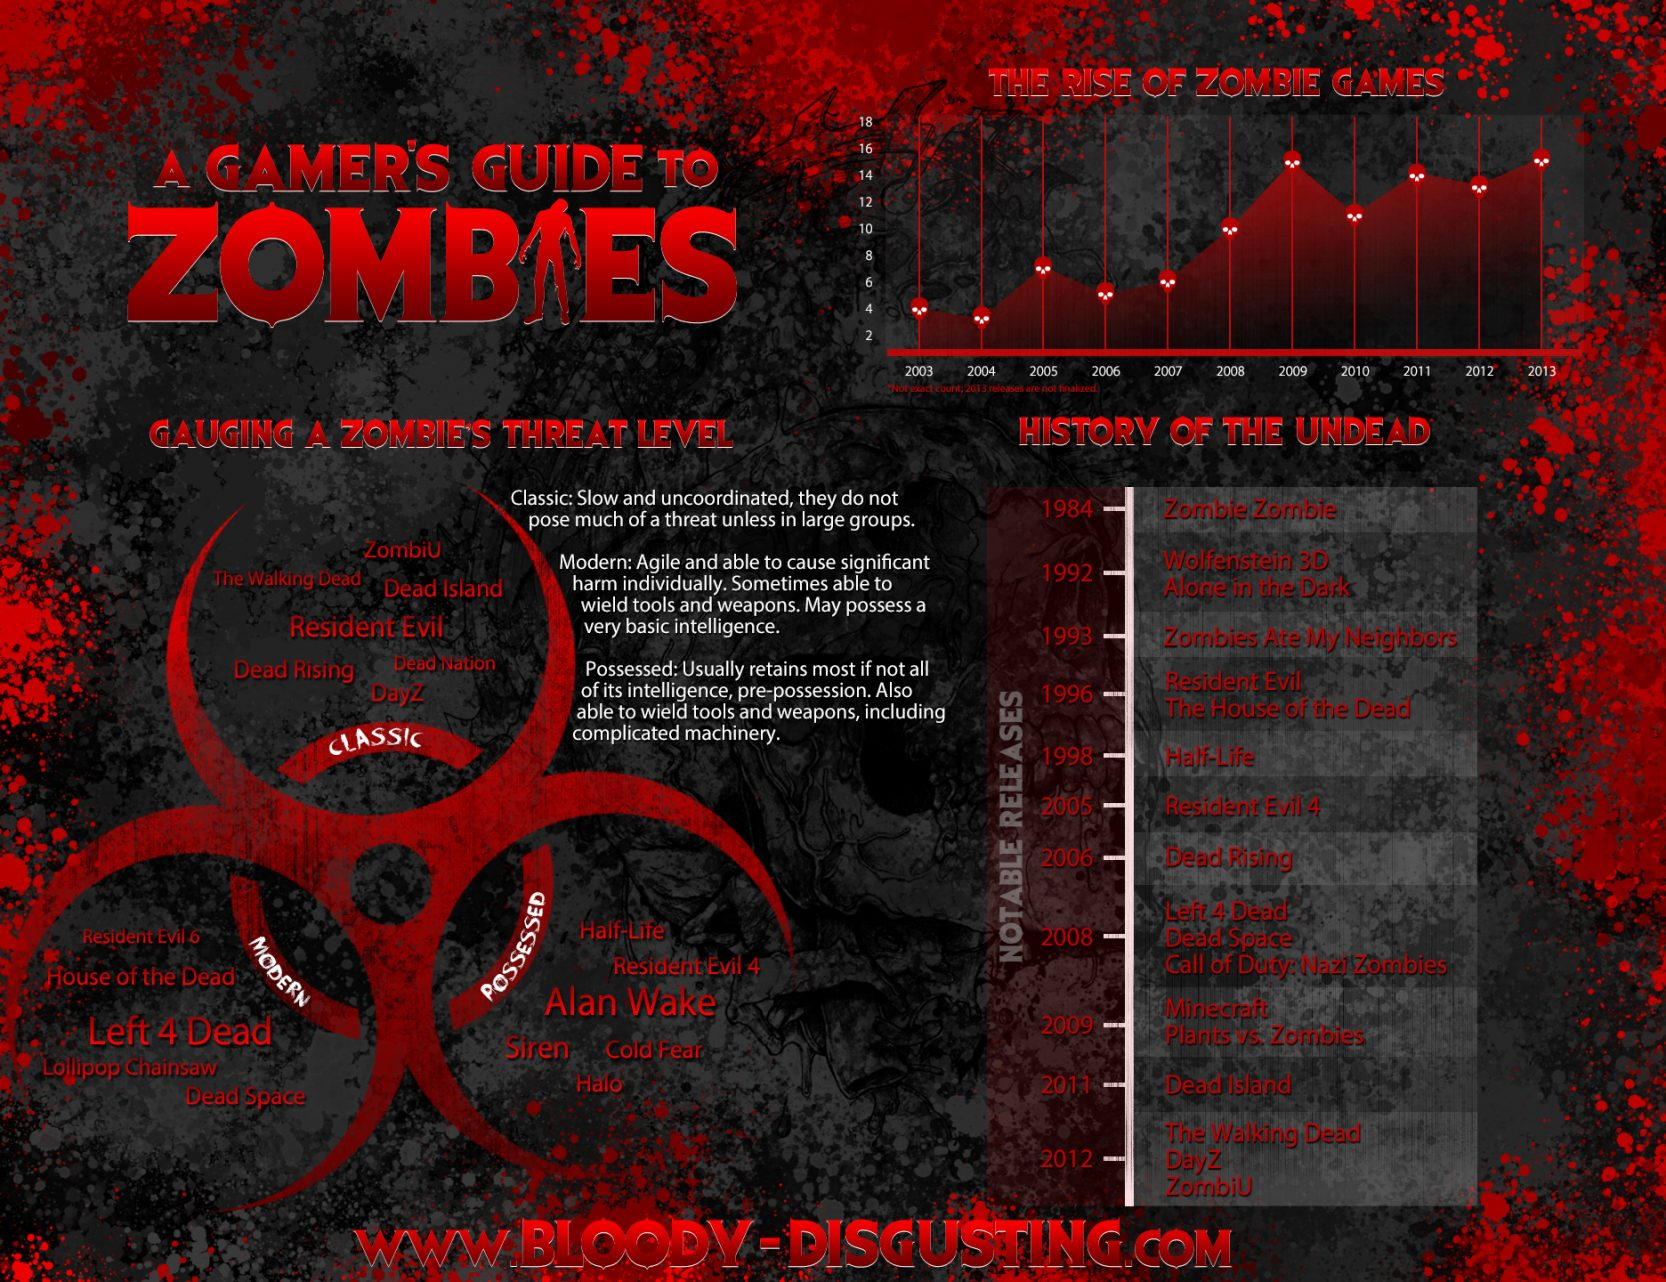 gamers guide to zombies A Gamers Guide to Zombies Infographic